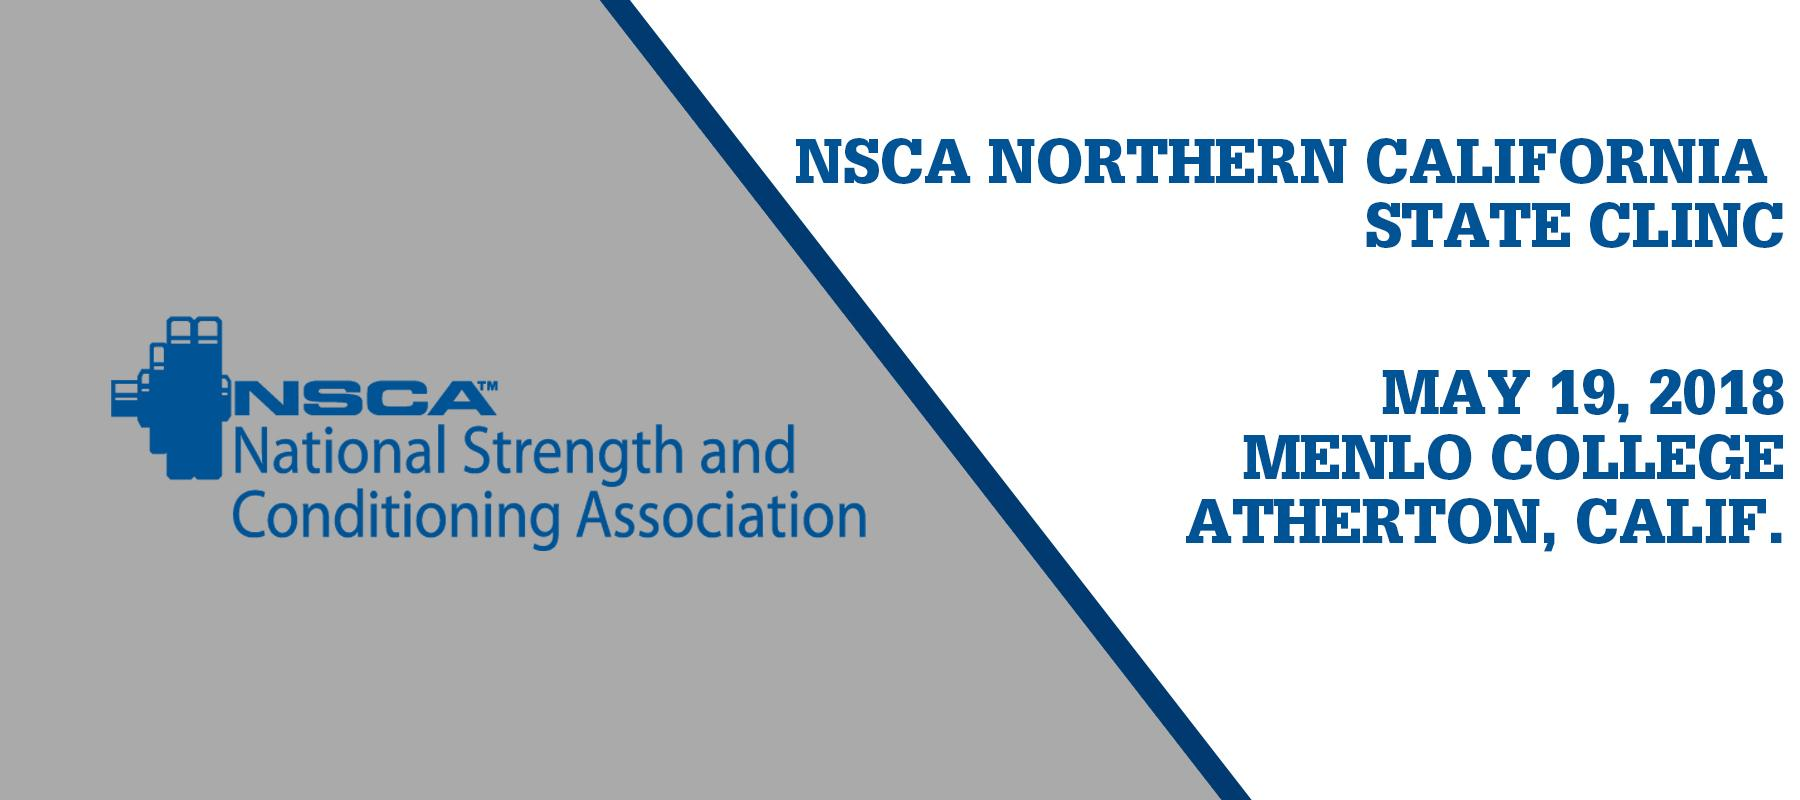 Menlo College Hosting NSCA Northern California State Clinic